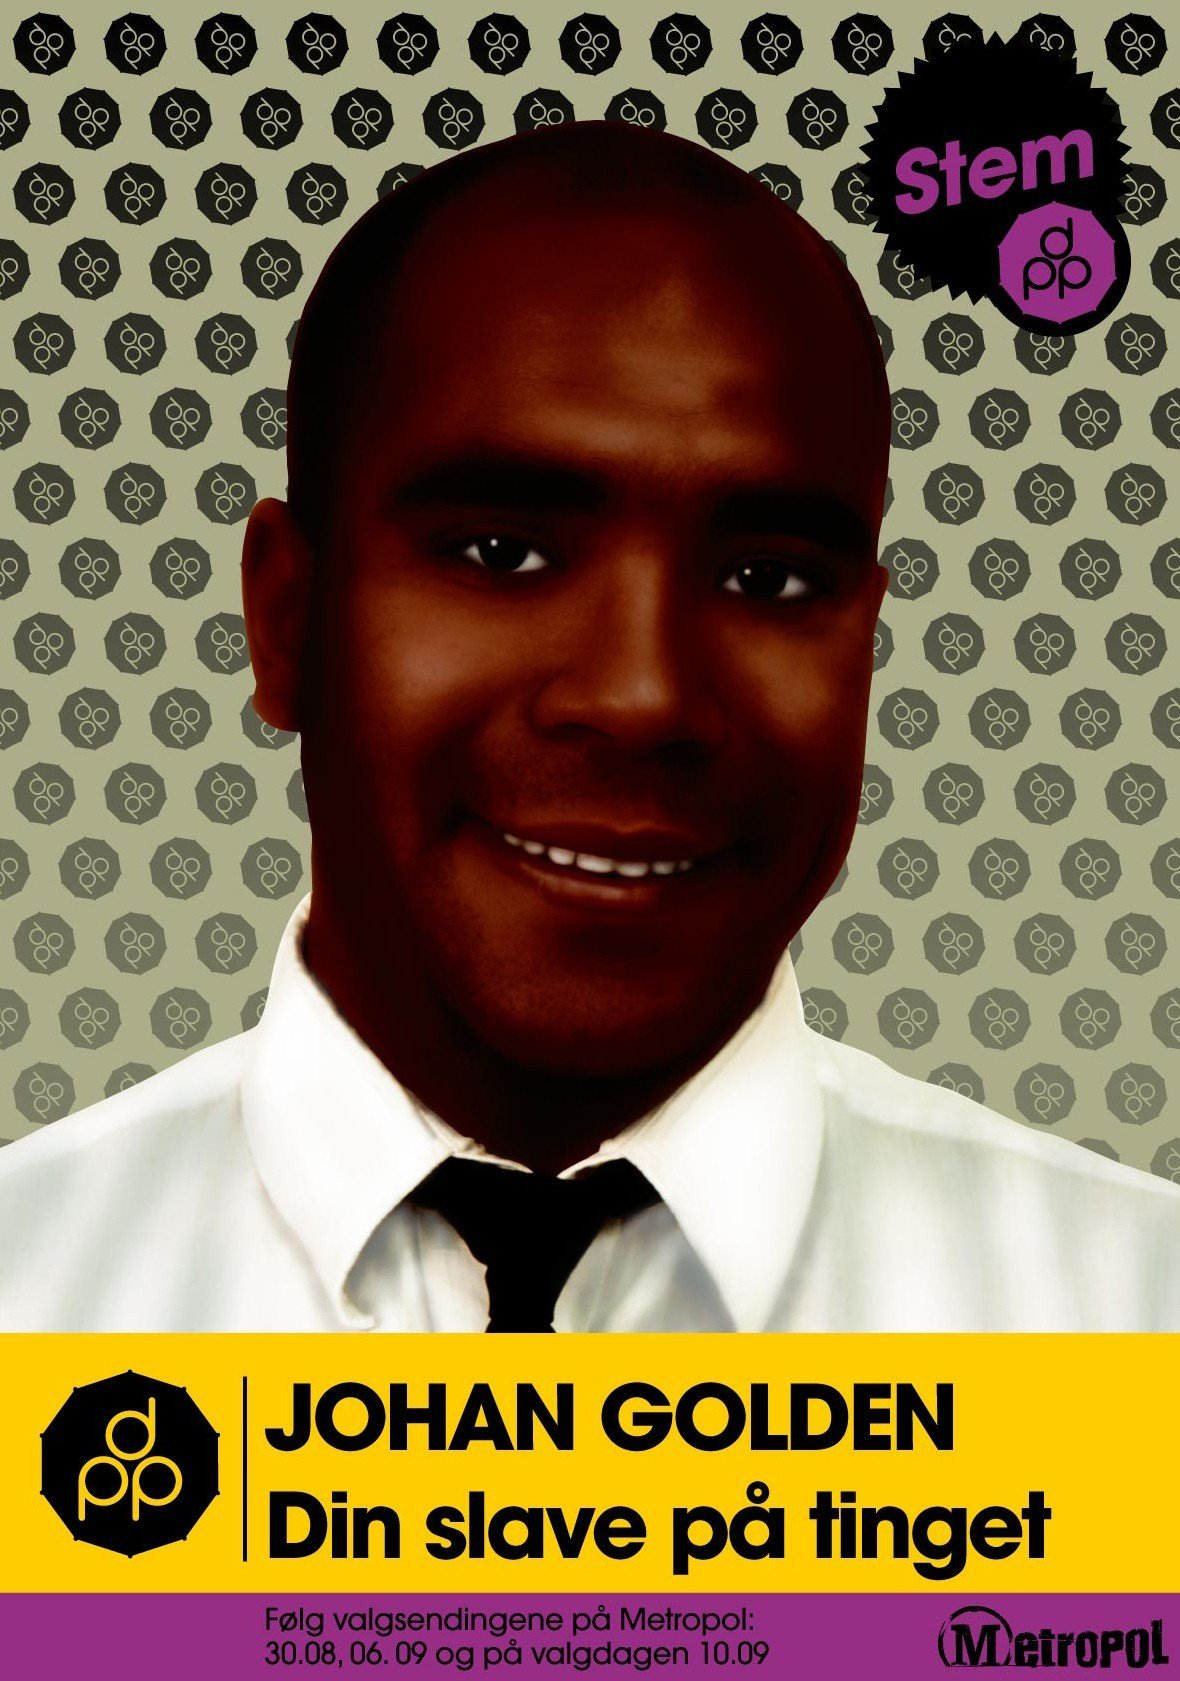 johan golden alliansen